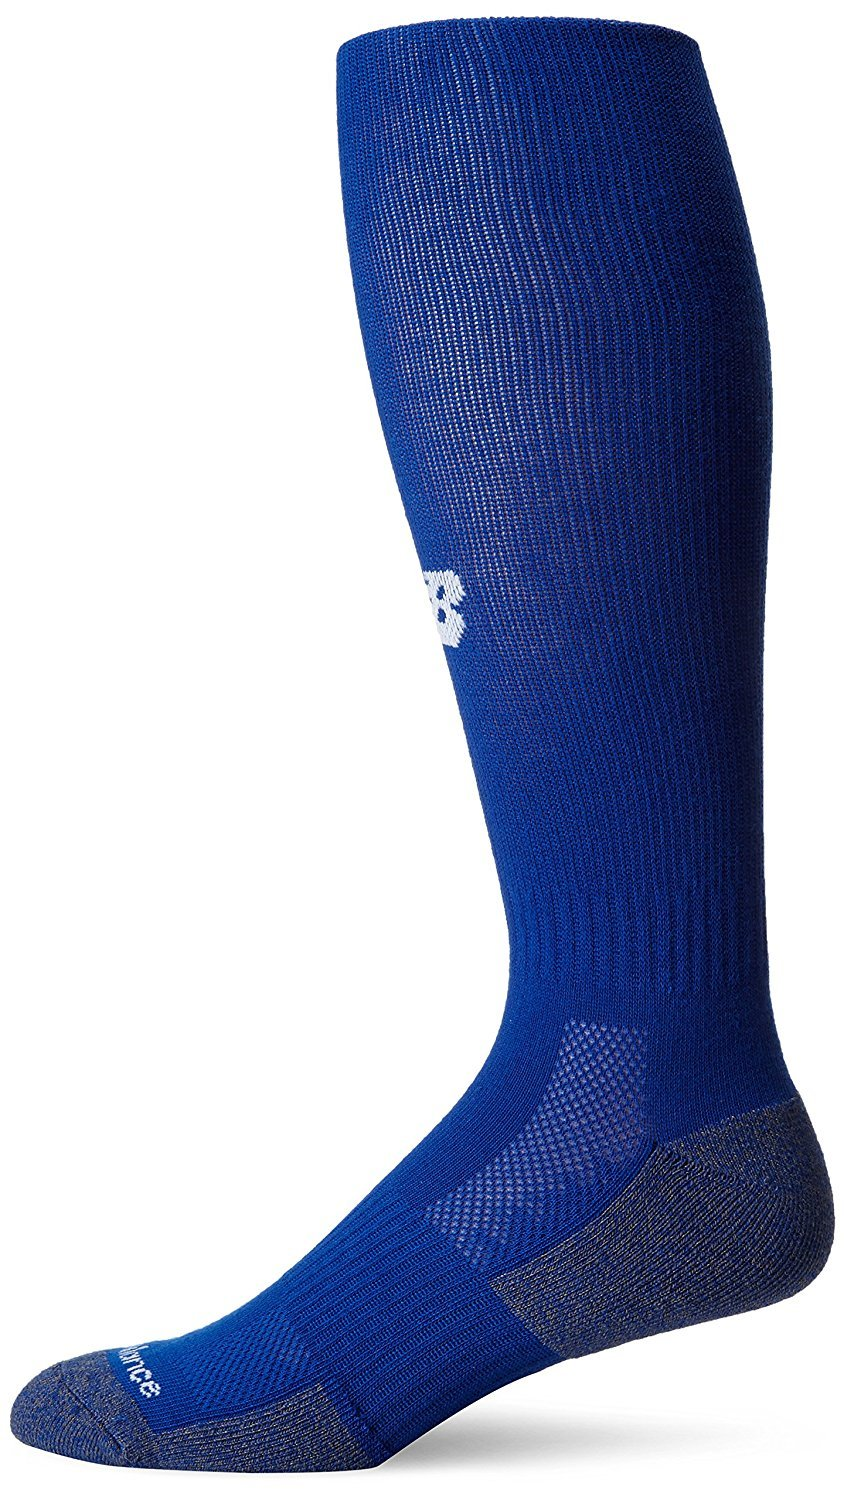 New Balance Men's Over The Calf Baseball Sock, Blue, Size 9-12.5/Large by New Balance